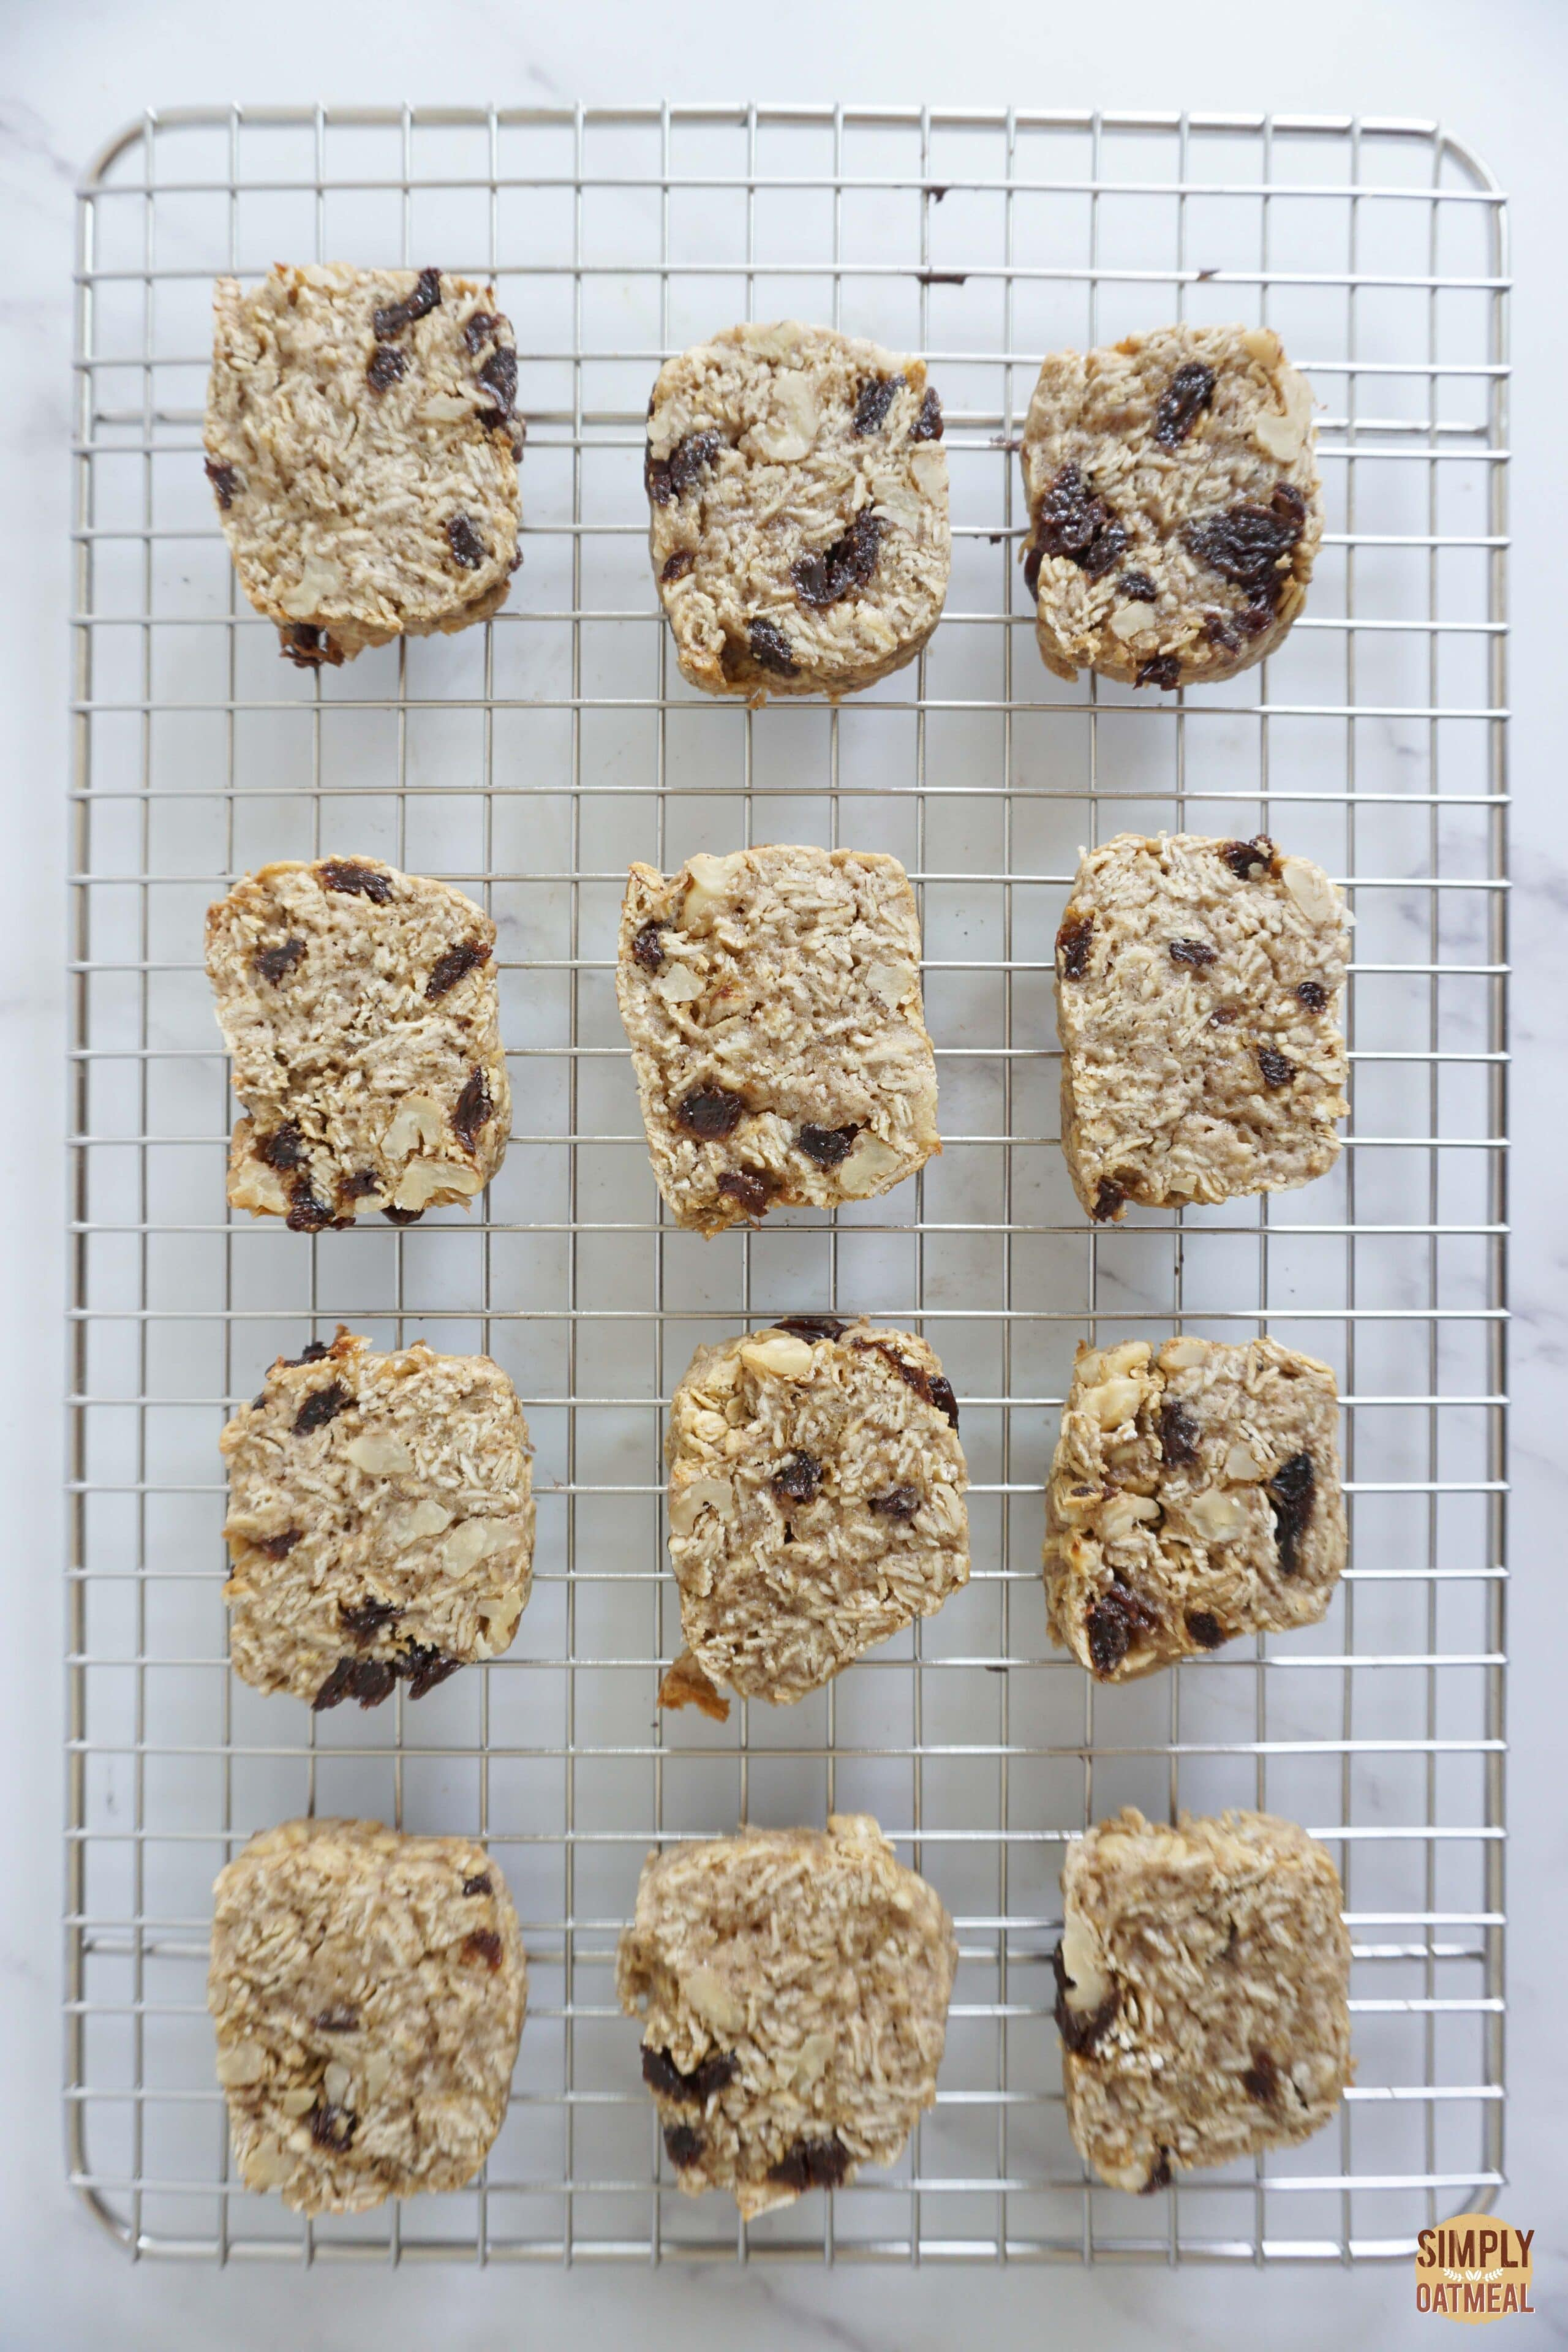 Fresh baked carrot cake oatmeal cookies on wire rack.